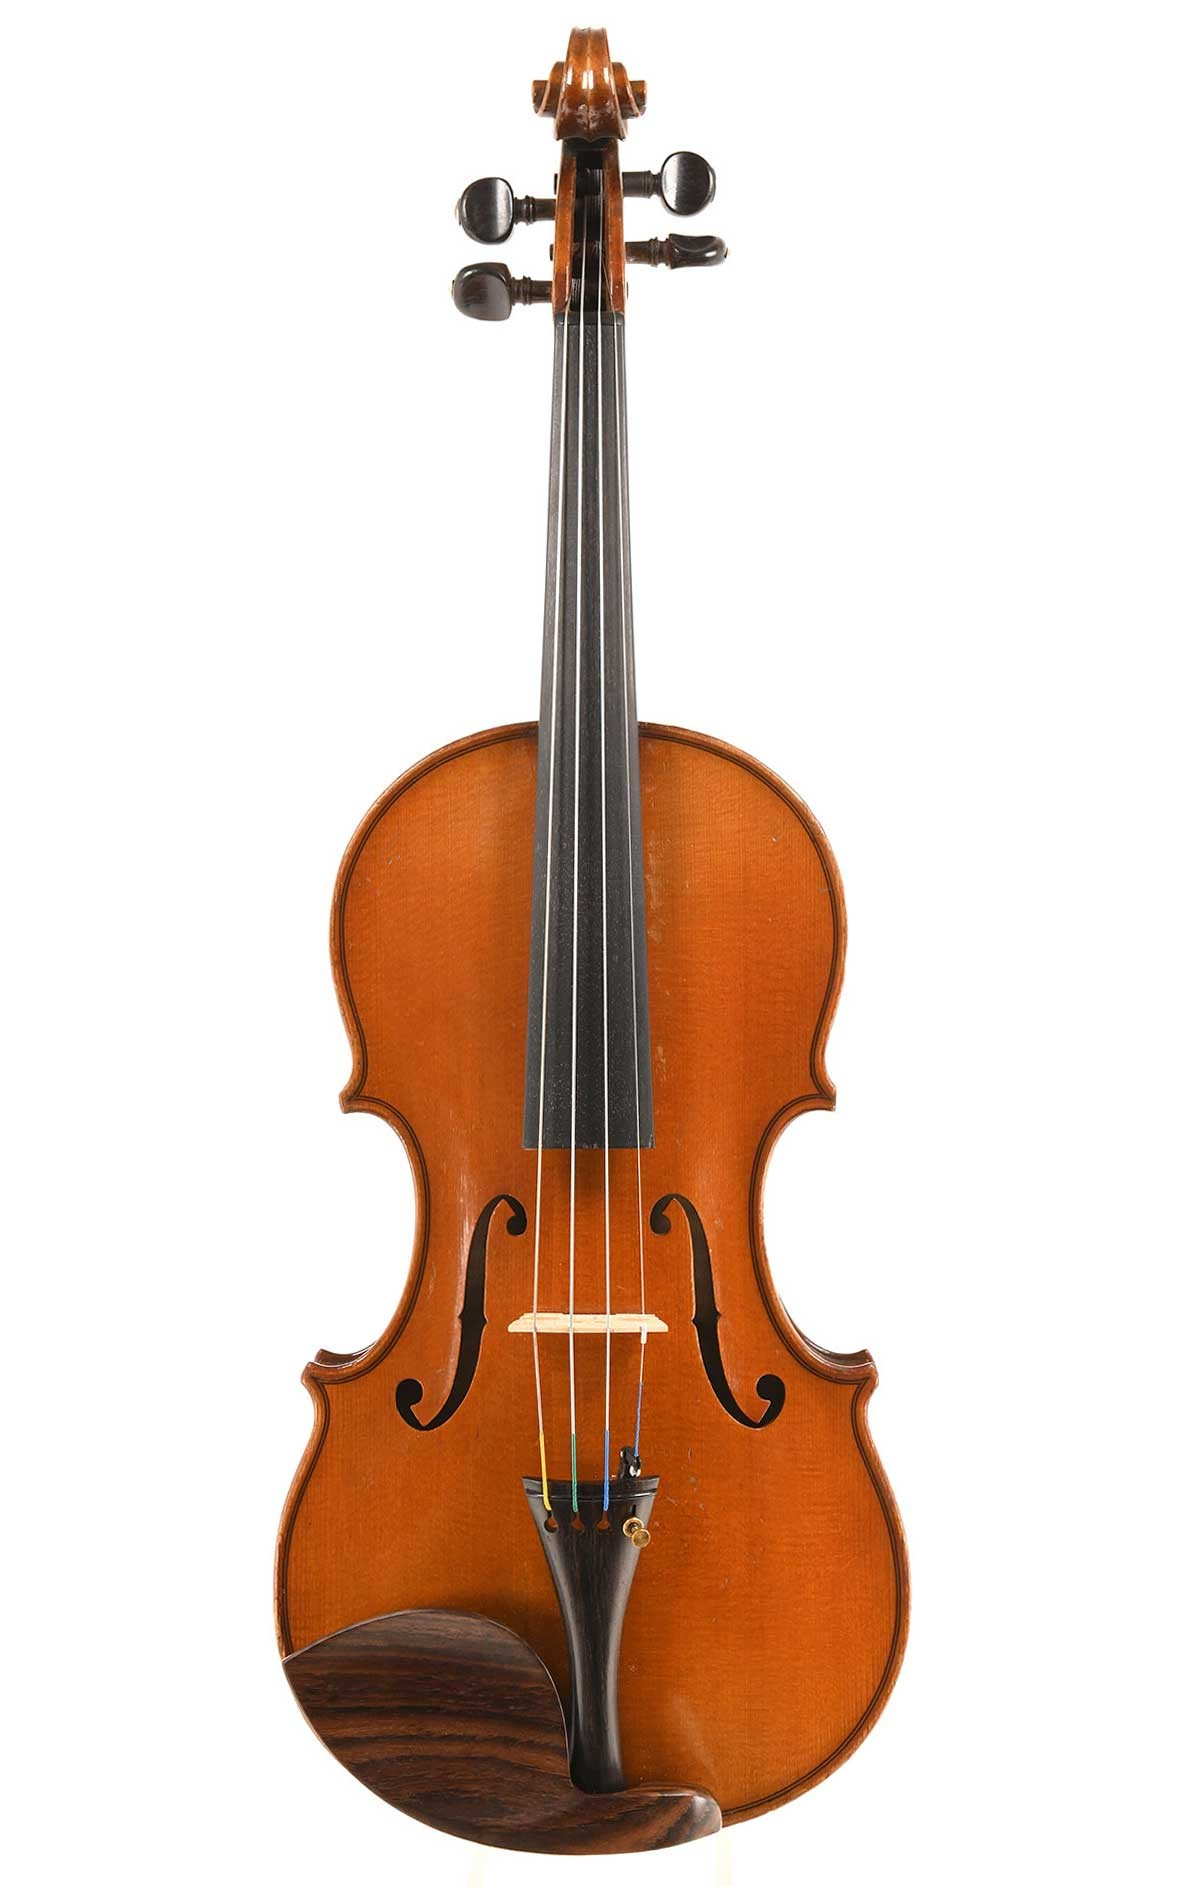 Lucien André Ragot, powerful French violin after Guarneri, c. 1940/1950